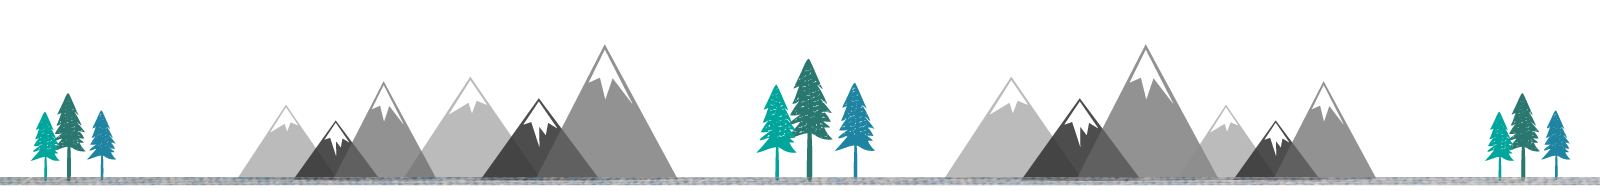 footer trees and mountains